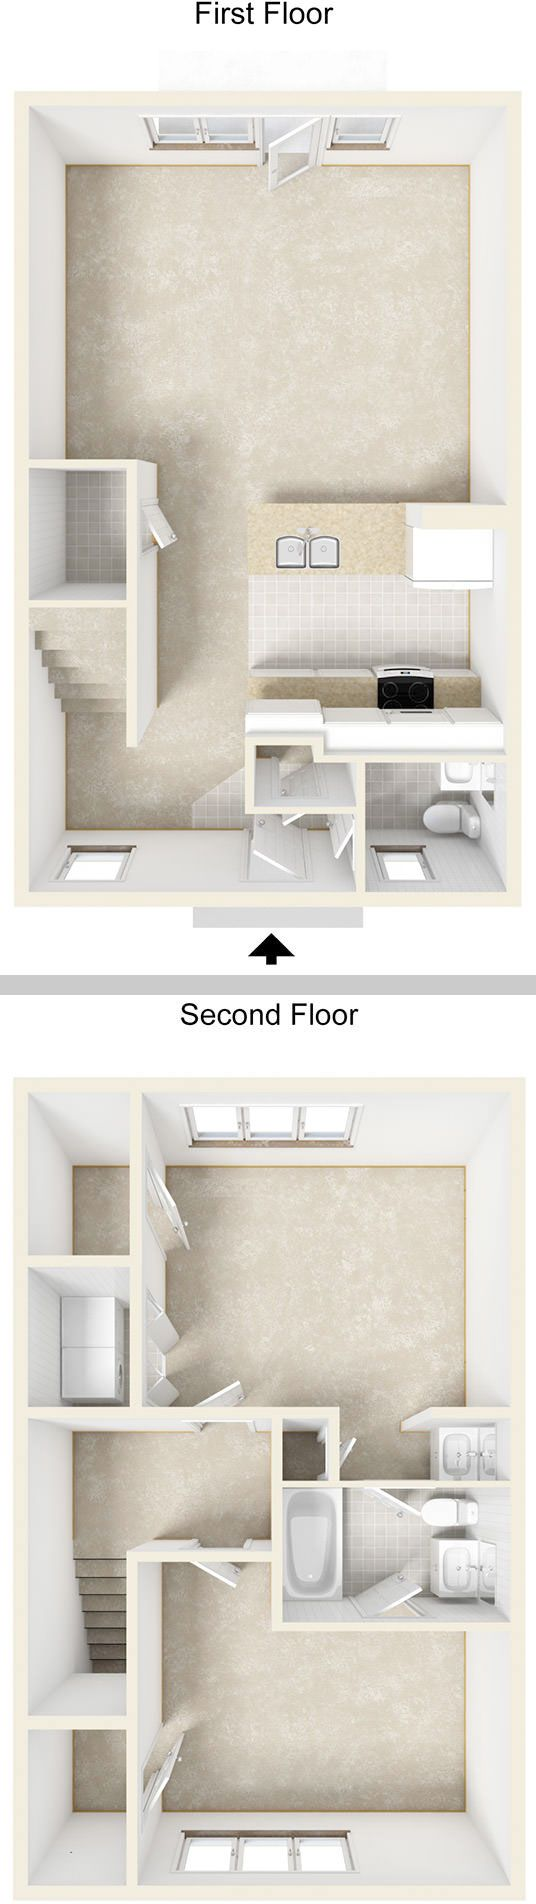 1000 square foot 2 story townhouse floor plan for Townhouse flooring ideas